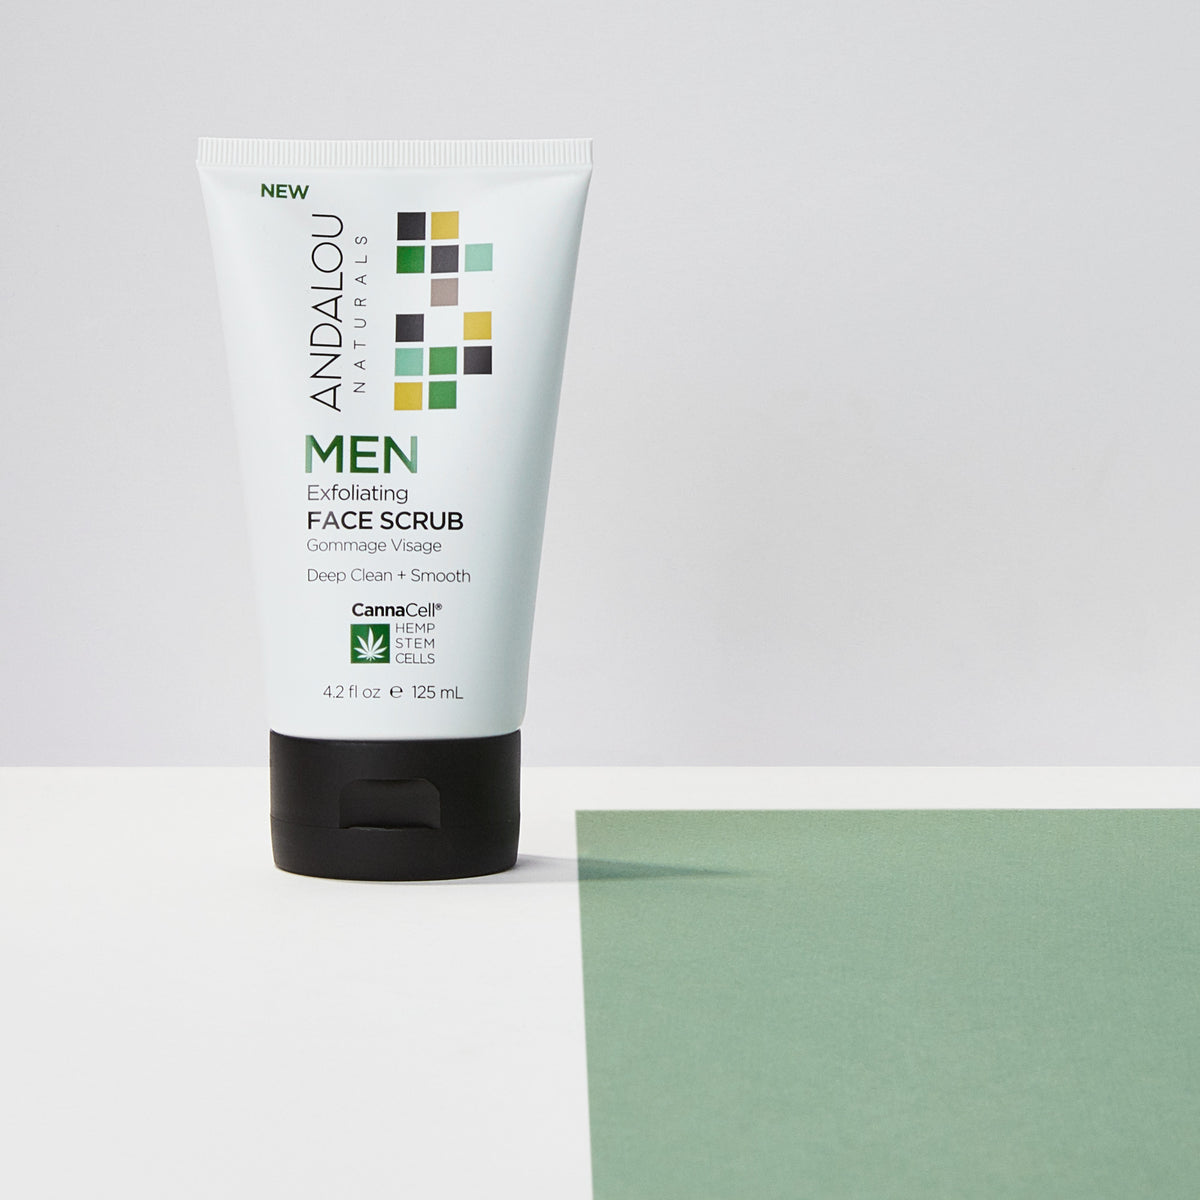 MEN Exfoliating Face Scrub - Andalou Naturals US